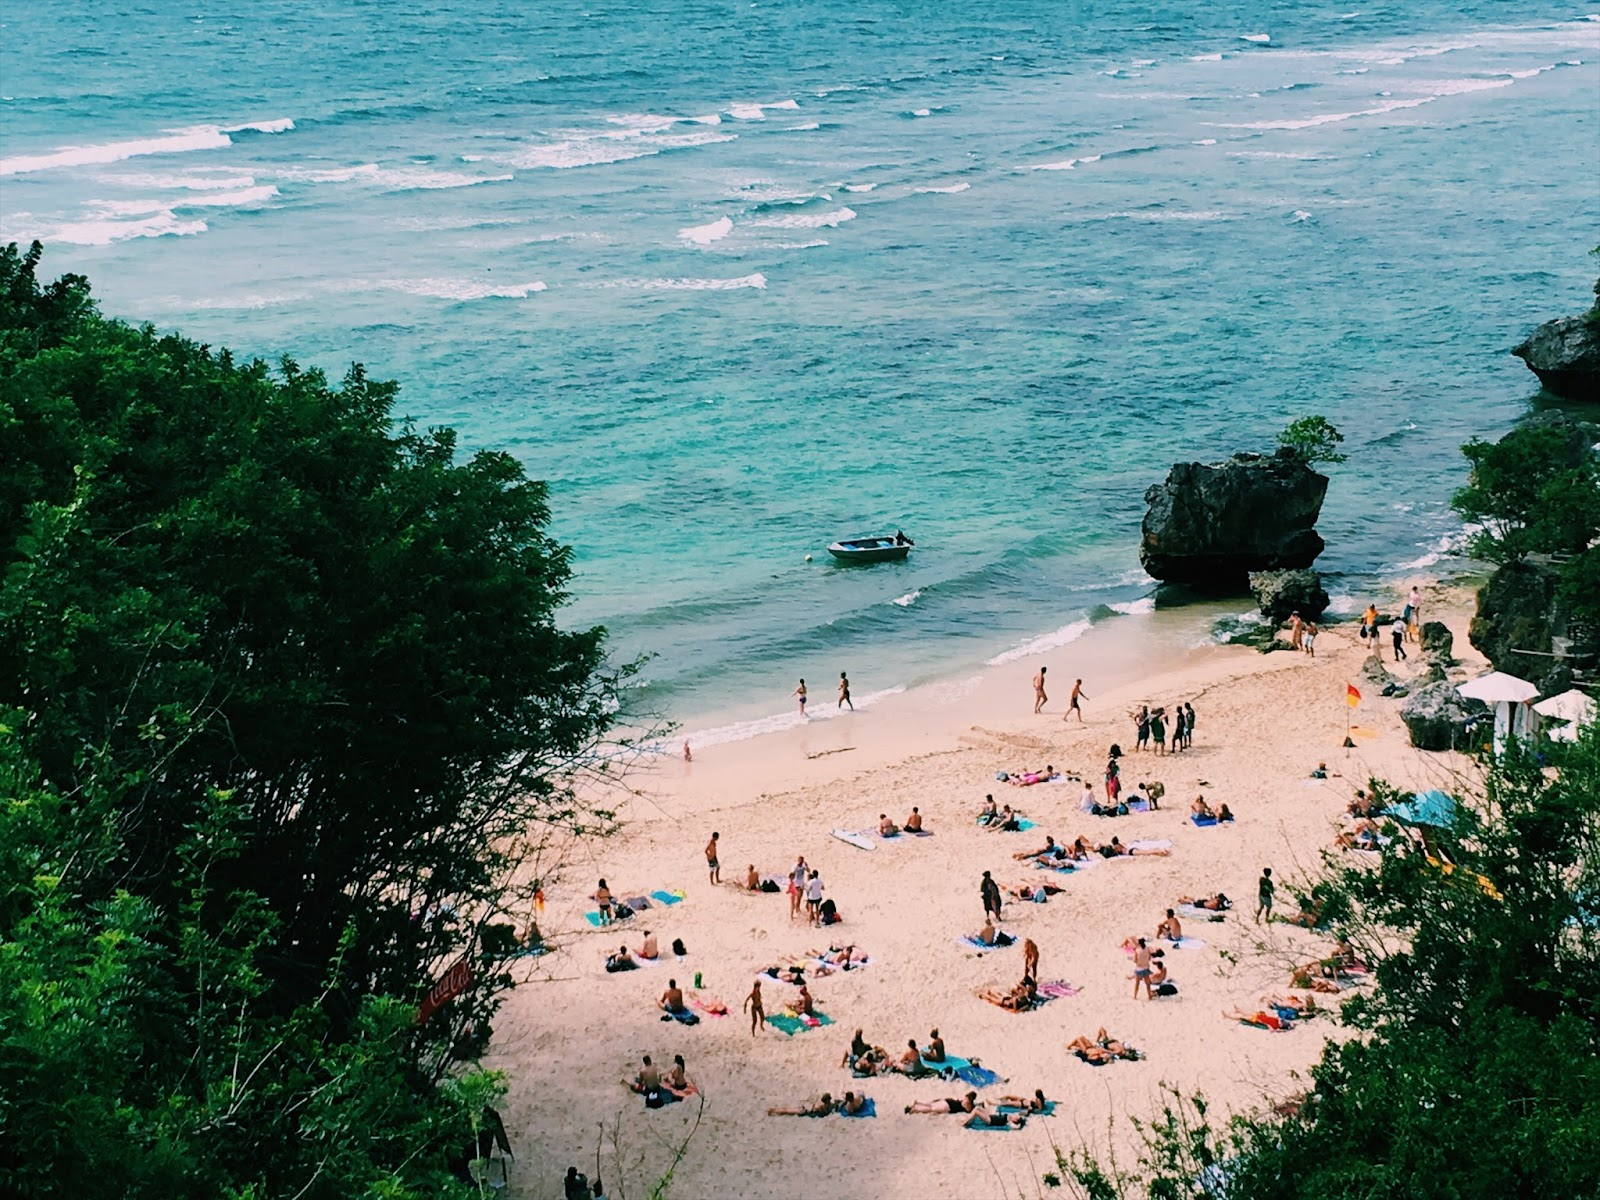 Heading over to Bali for the first time? Here is everything you need to know for a stress free, budget friendly holiday!